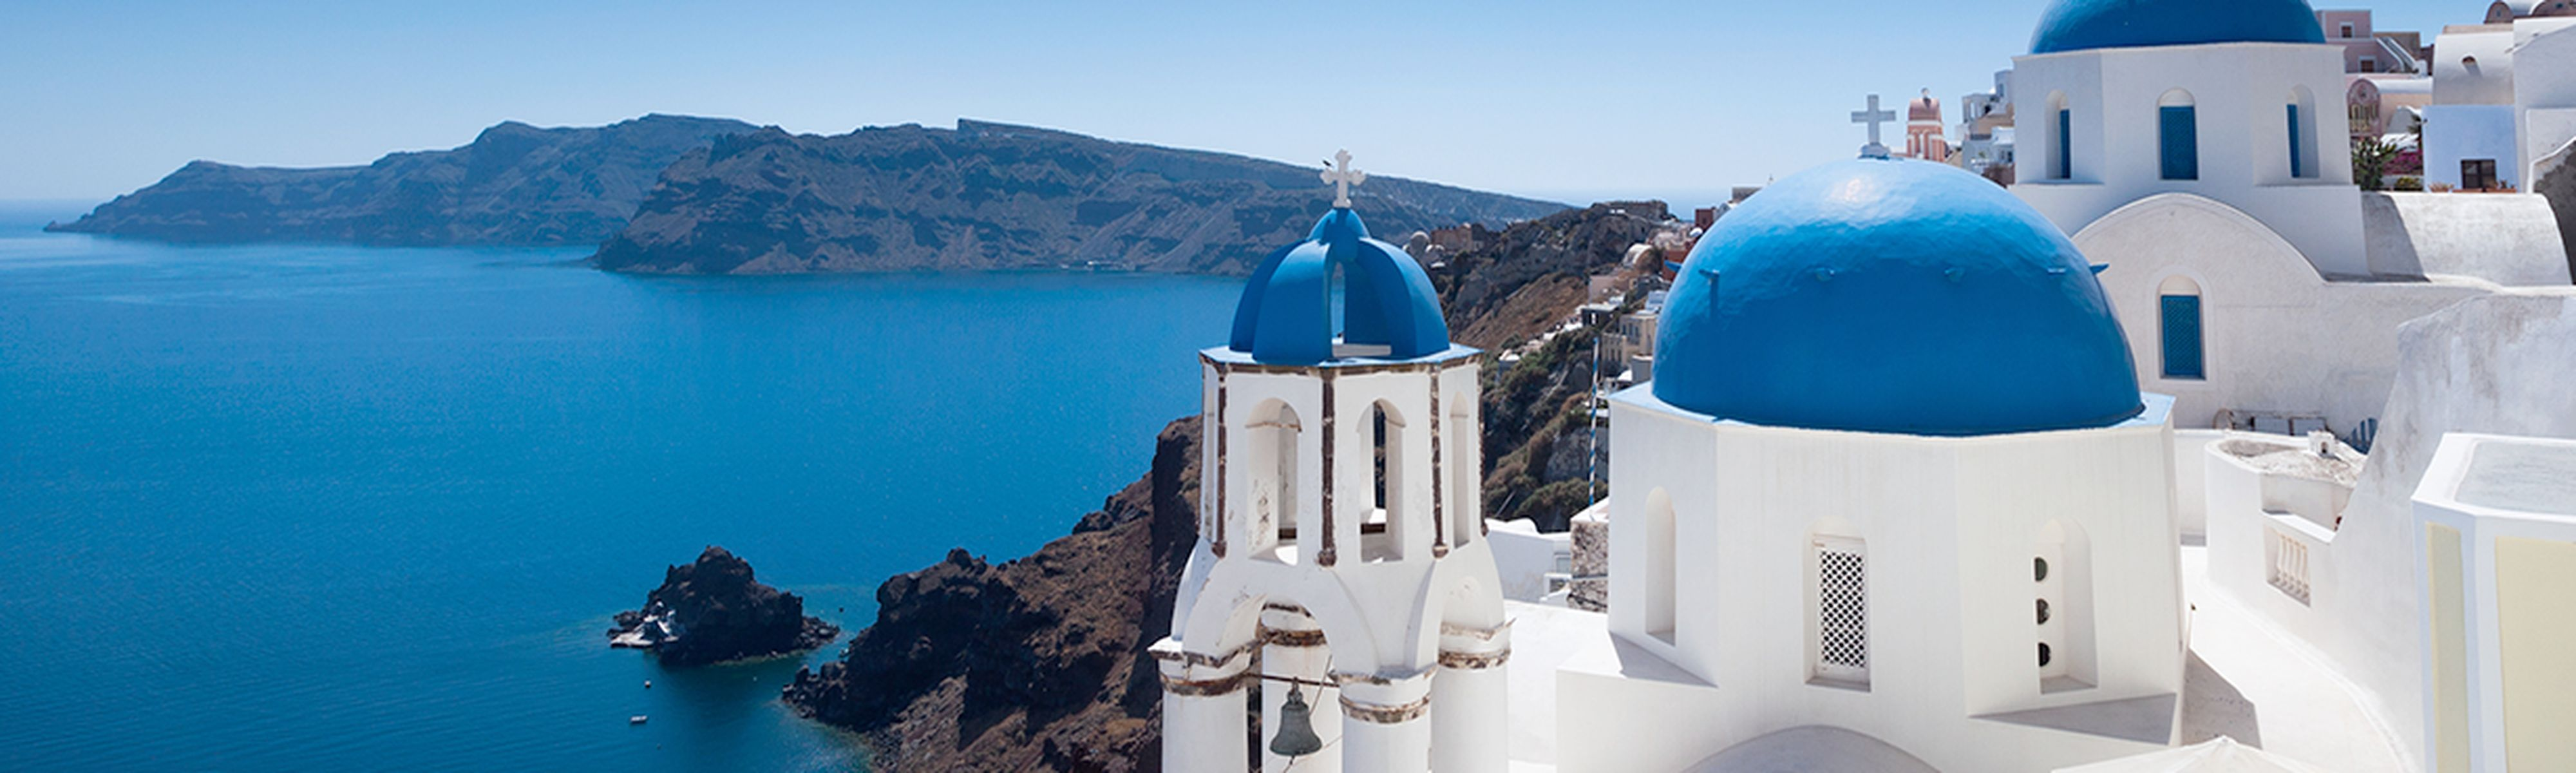 Blue and white domed churches on Santorini Greek Island